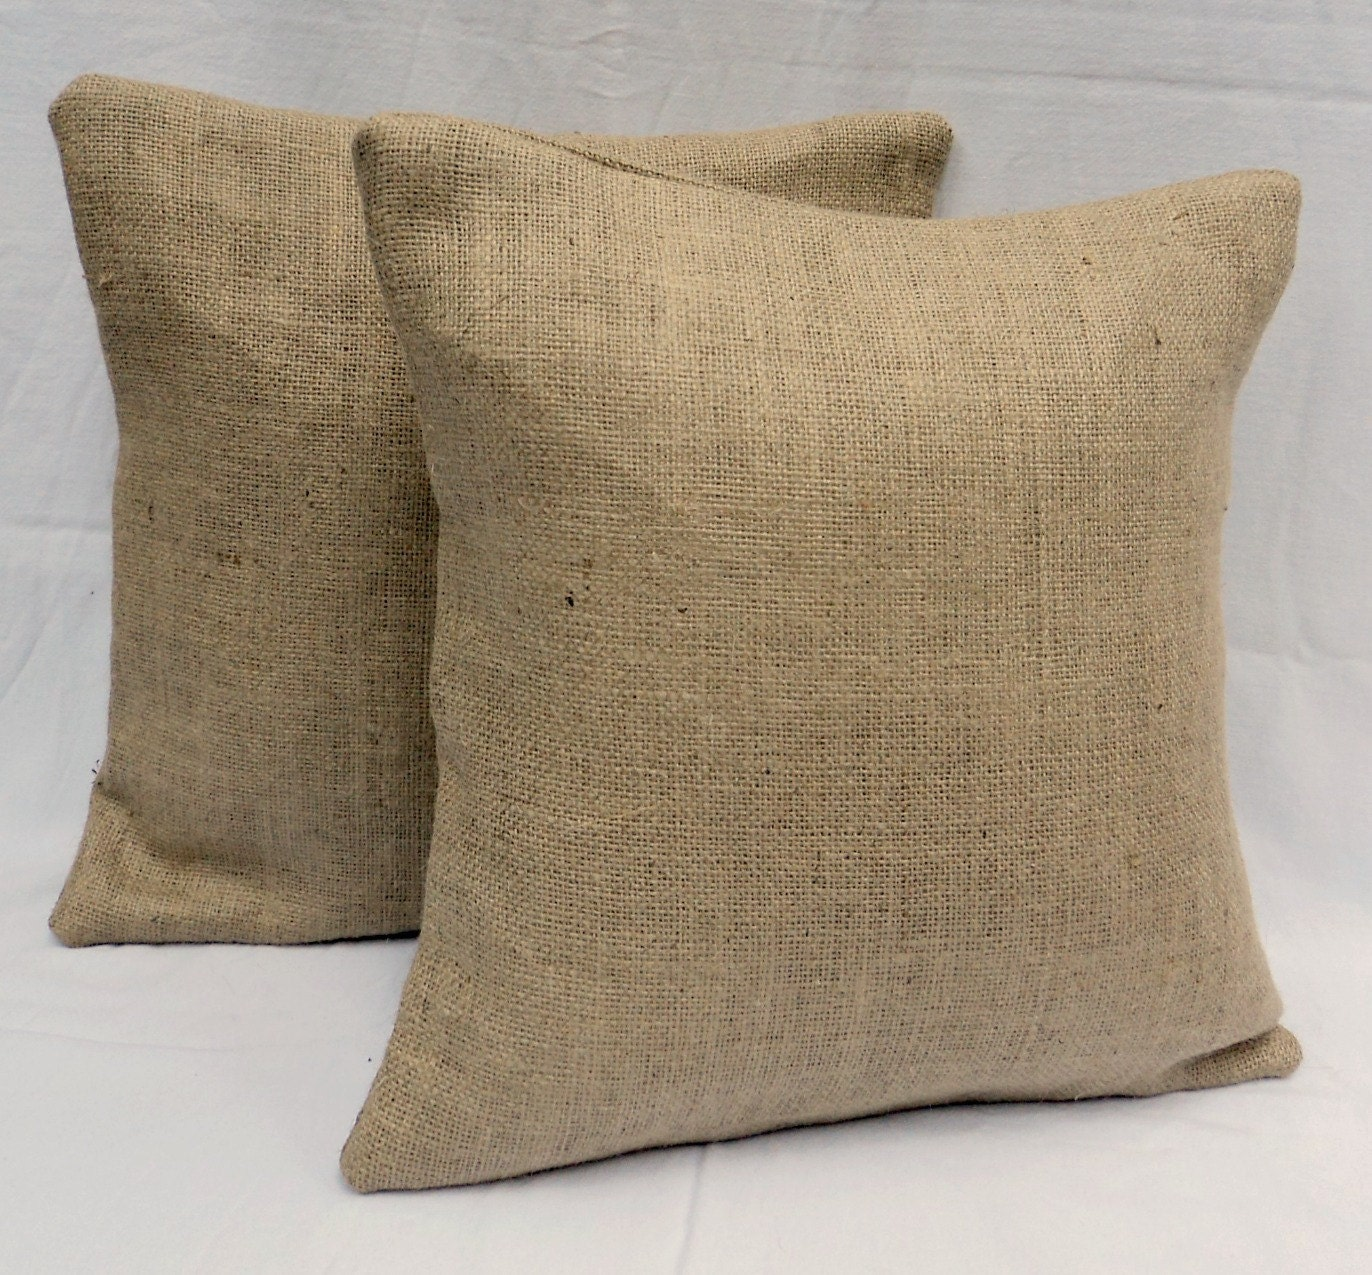 How To Make A Burlap Throw Pillow : Set of 2 18 x 18 Burlap Throw Pillows Fully Lined